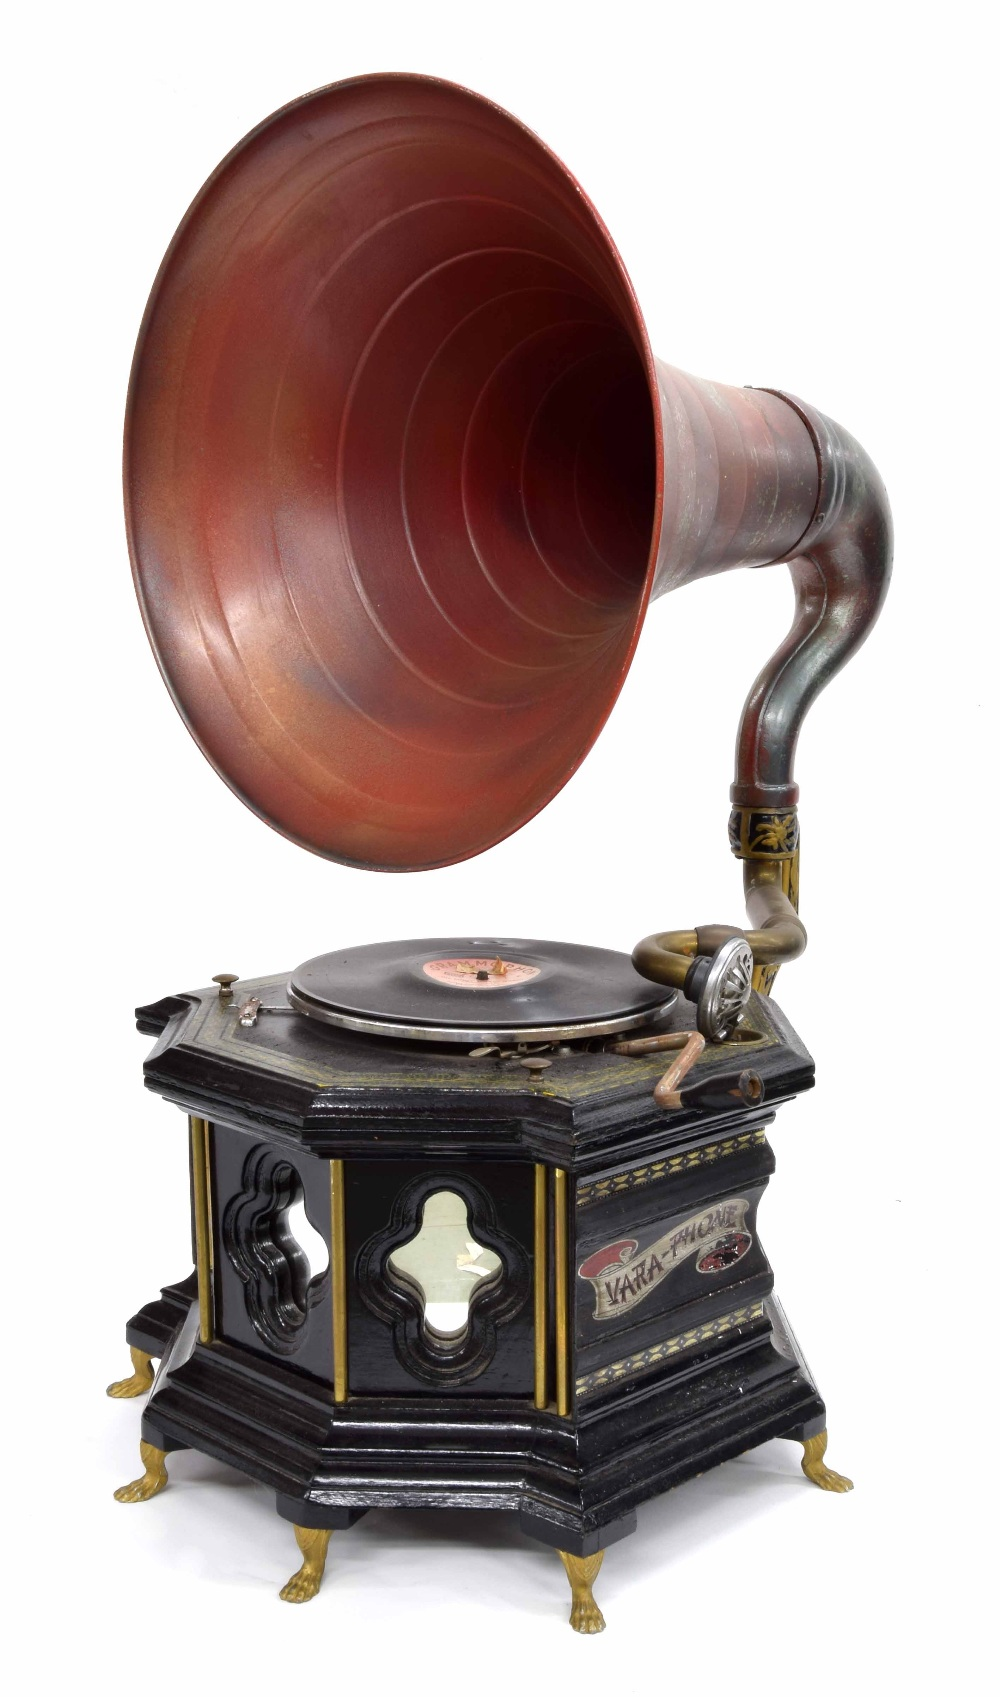 Lot 622 - Vara-Phone wind-up table gramophone, with HMV no. 5B sound box, within an elaborate architectural